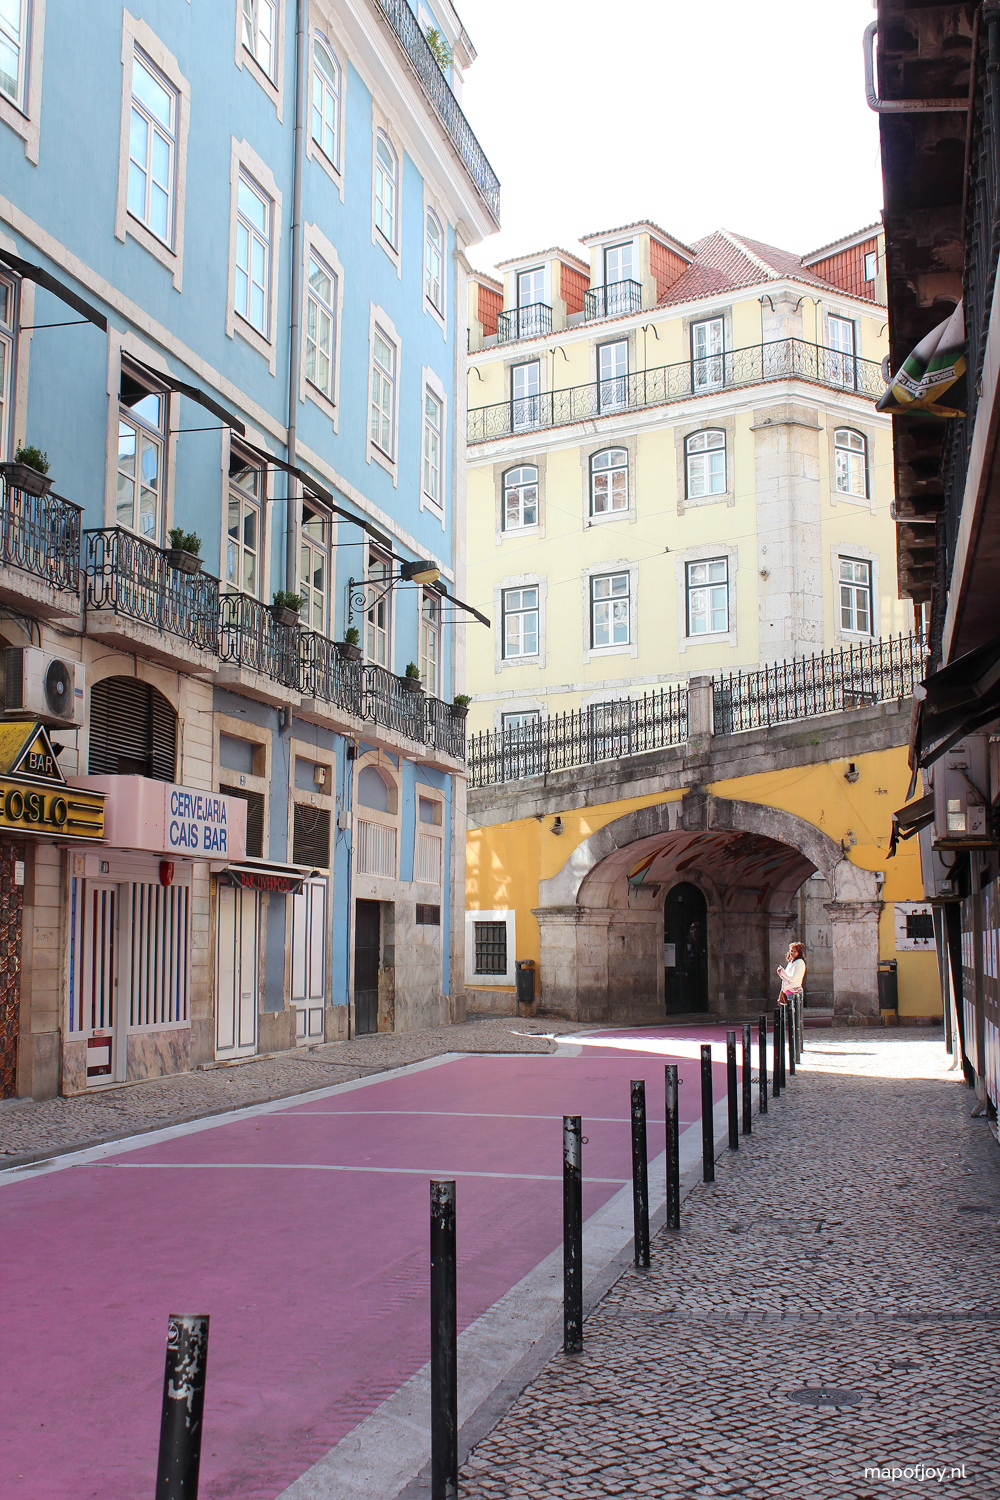 "Rua Nova do Carvalho ""The Pink Street"", Lisbon - Map of Joy"